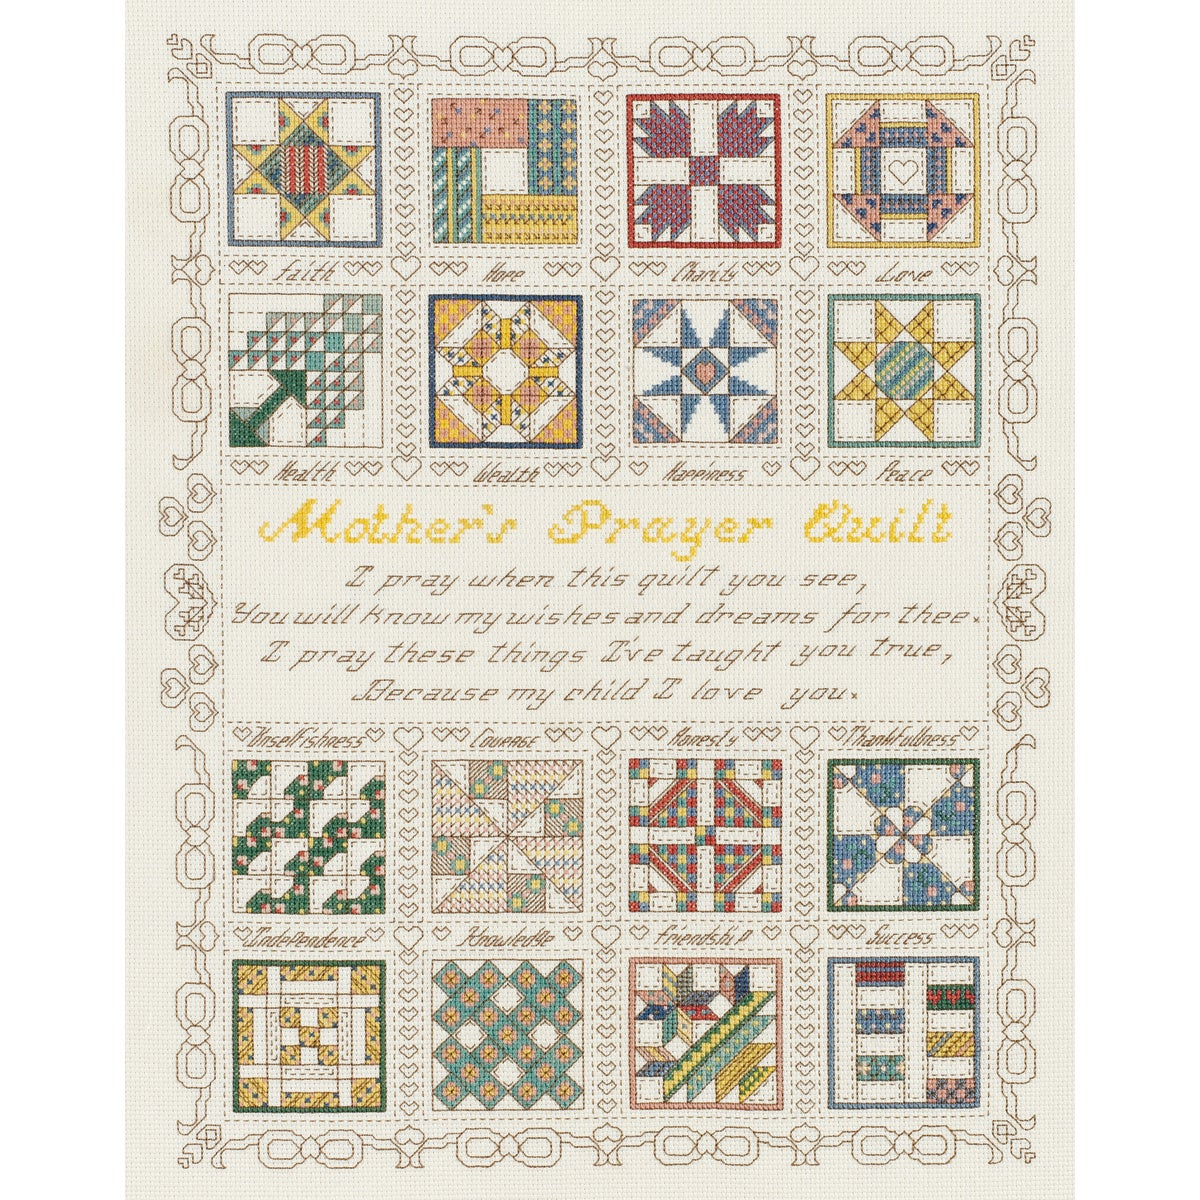 Mothers Prayer Counted Cross Stitch Kit 15X18 14 Count